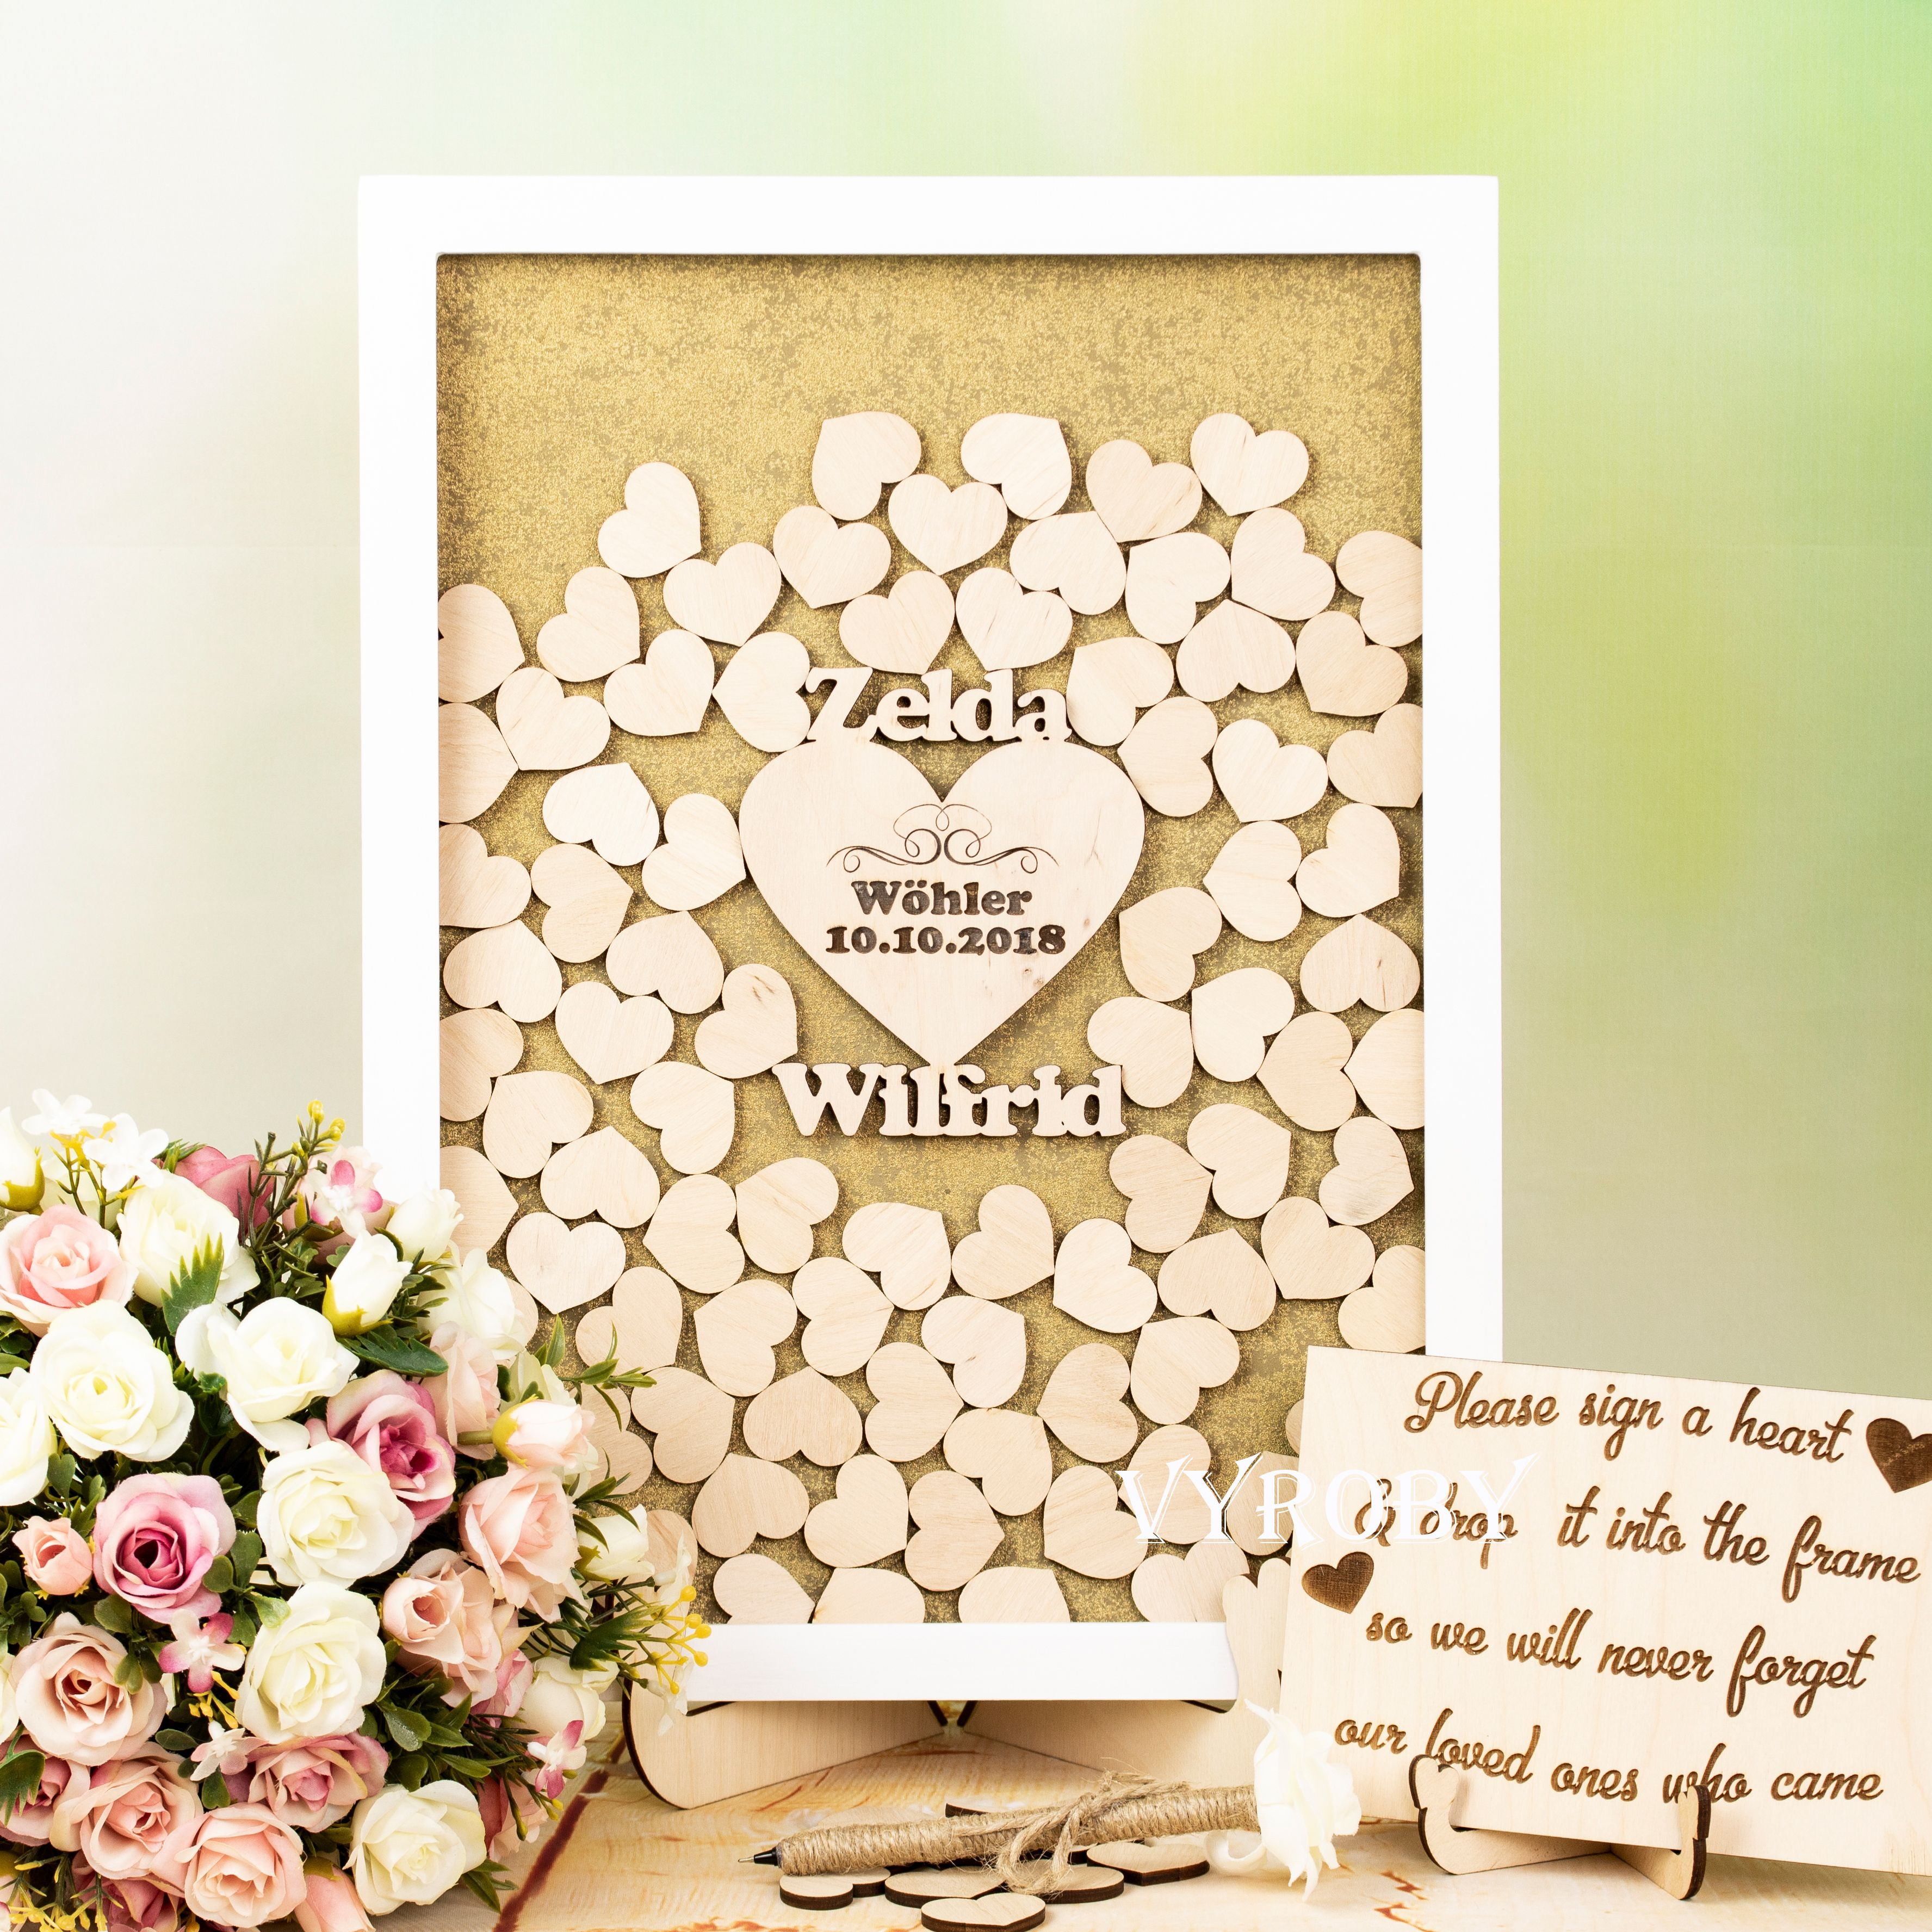 Wedding Sign In Book Alternative Wood Wedding Guest Book Sign Yellow And Gray Wedding Wedding Guest Book Wood Sign Wedding Guest Book Sign Wedding Drop Box Guest Book